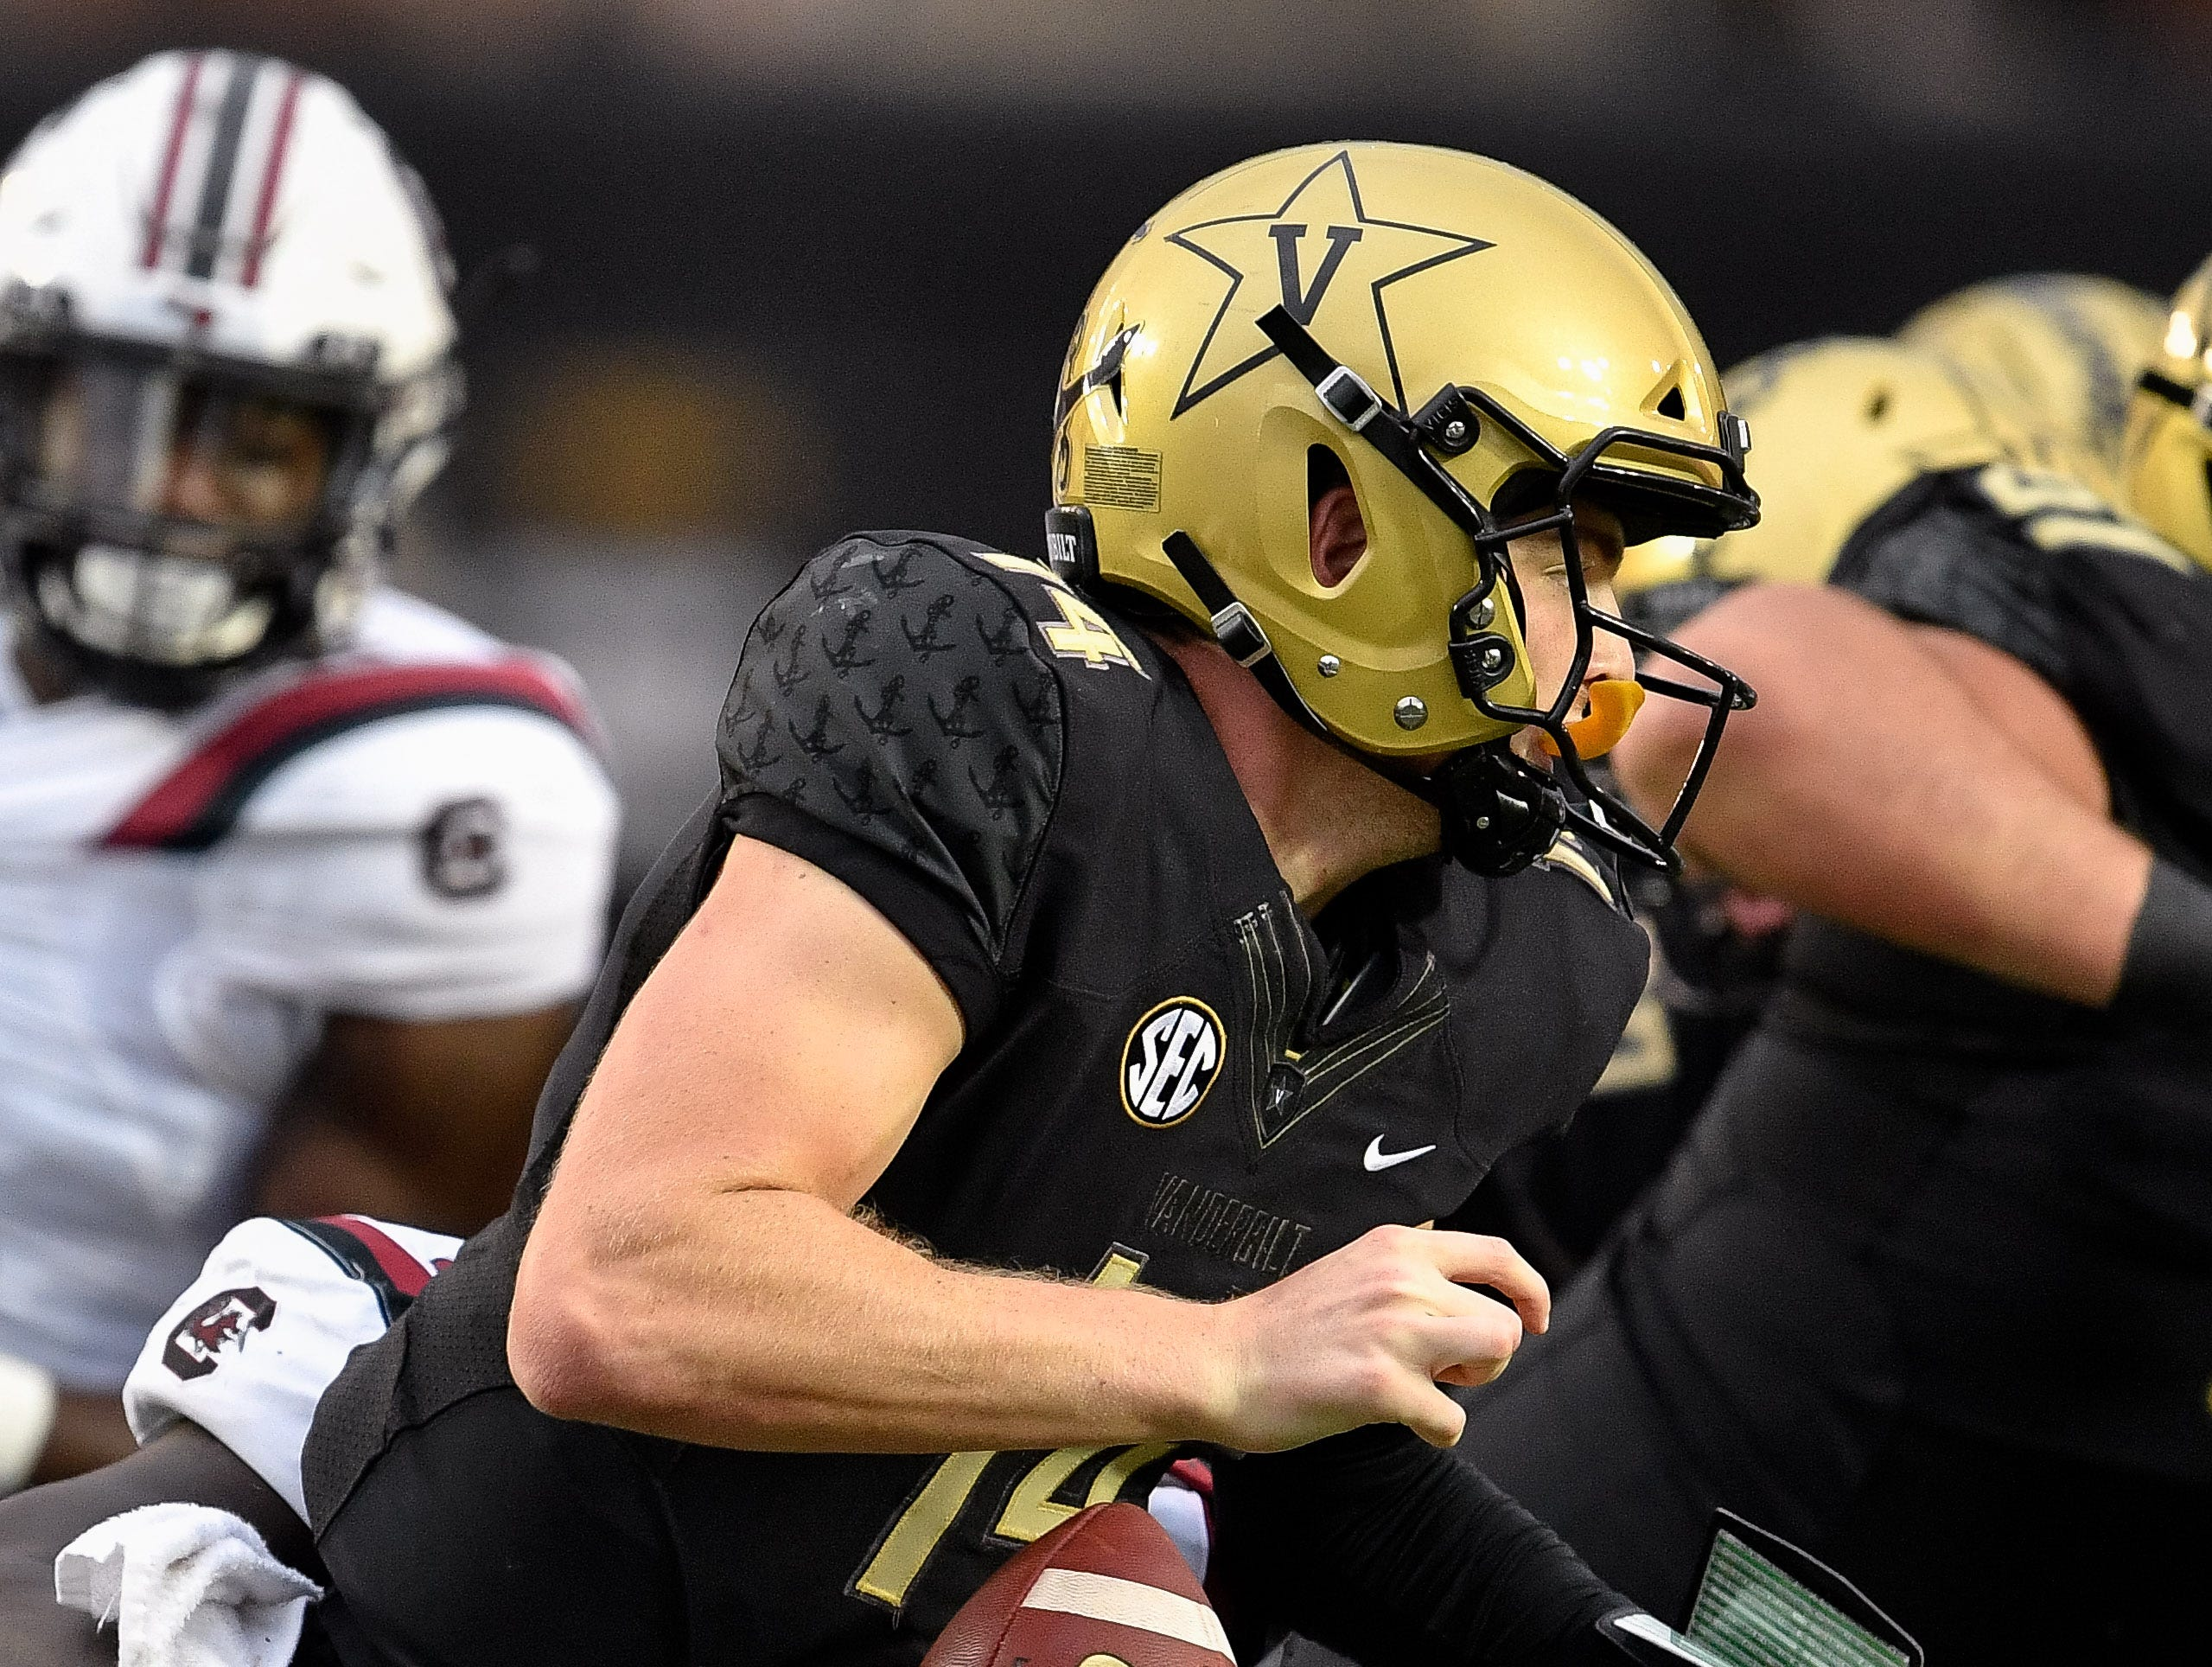 Vanderbilt quarterback Kyle Shurmur (14) fumbles on a hit from South Carolina defensive lineman Javon Kinlaw (3) during the second half at Vanderbilt University in Nashville, Tenn., Saturday, Sept. 22, 2018.